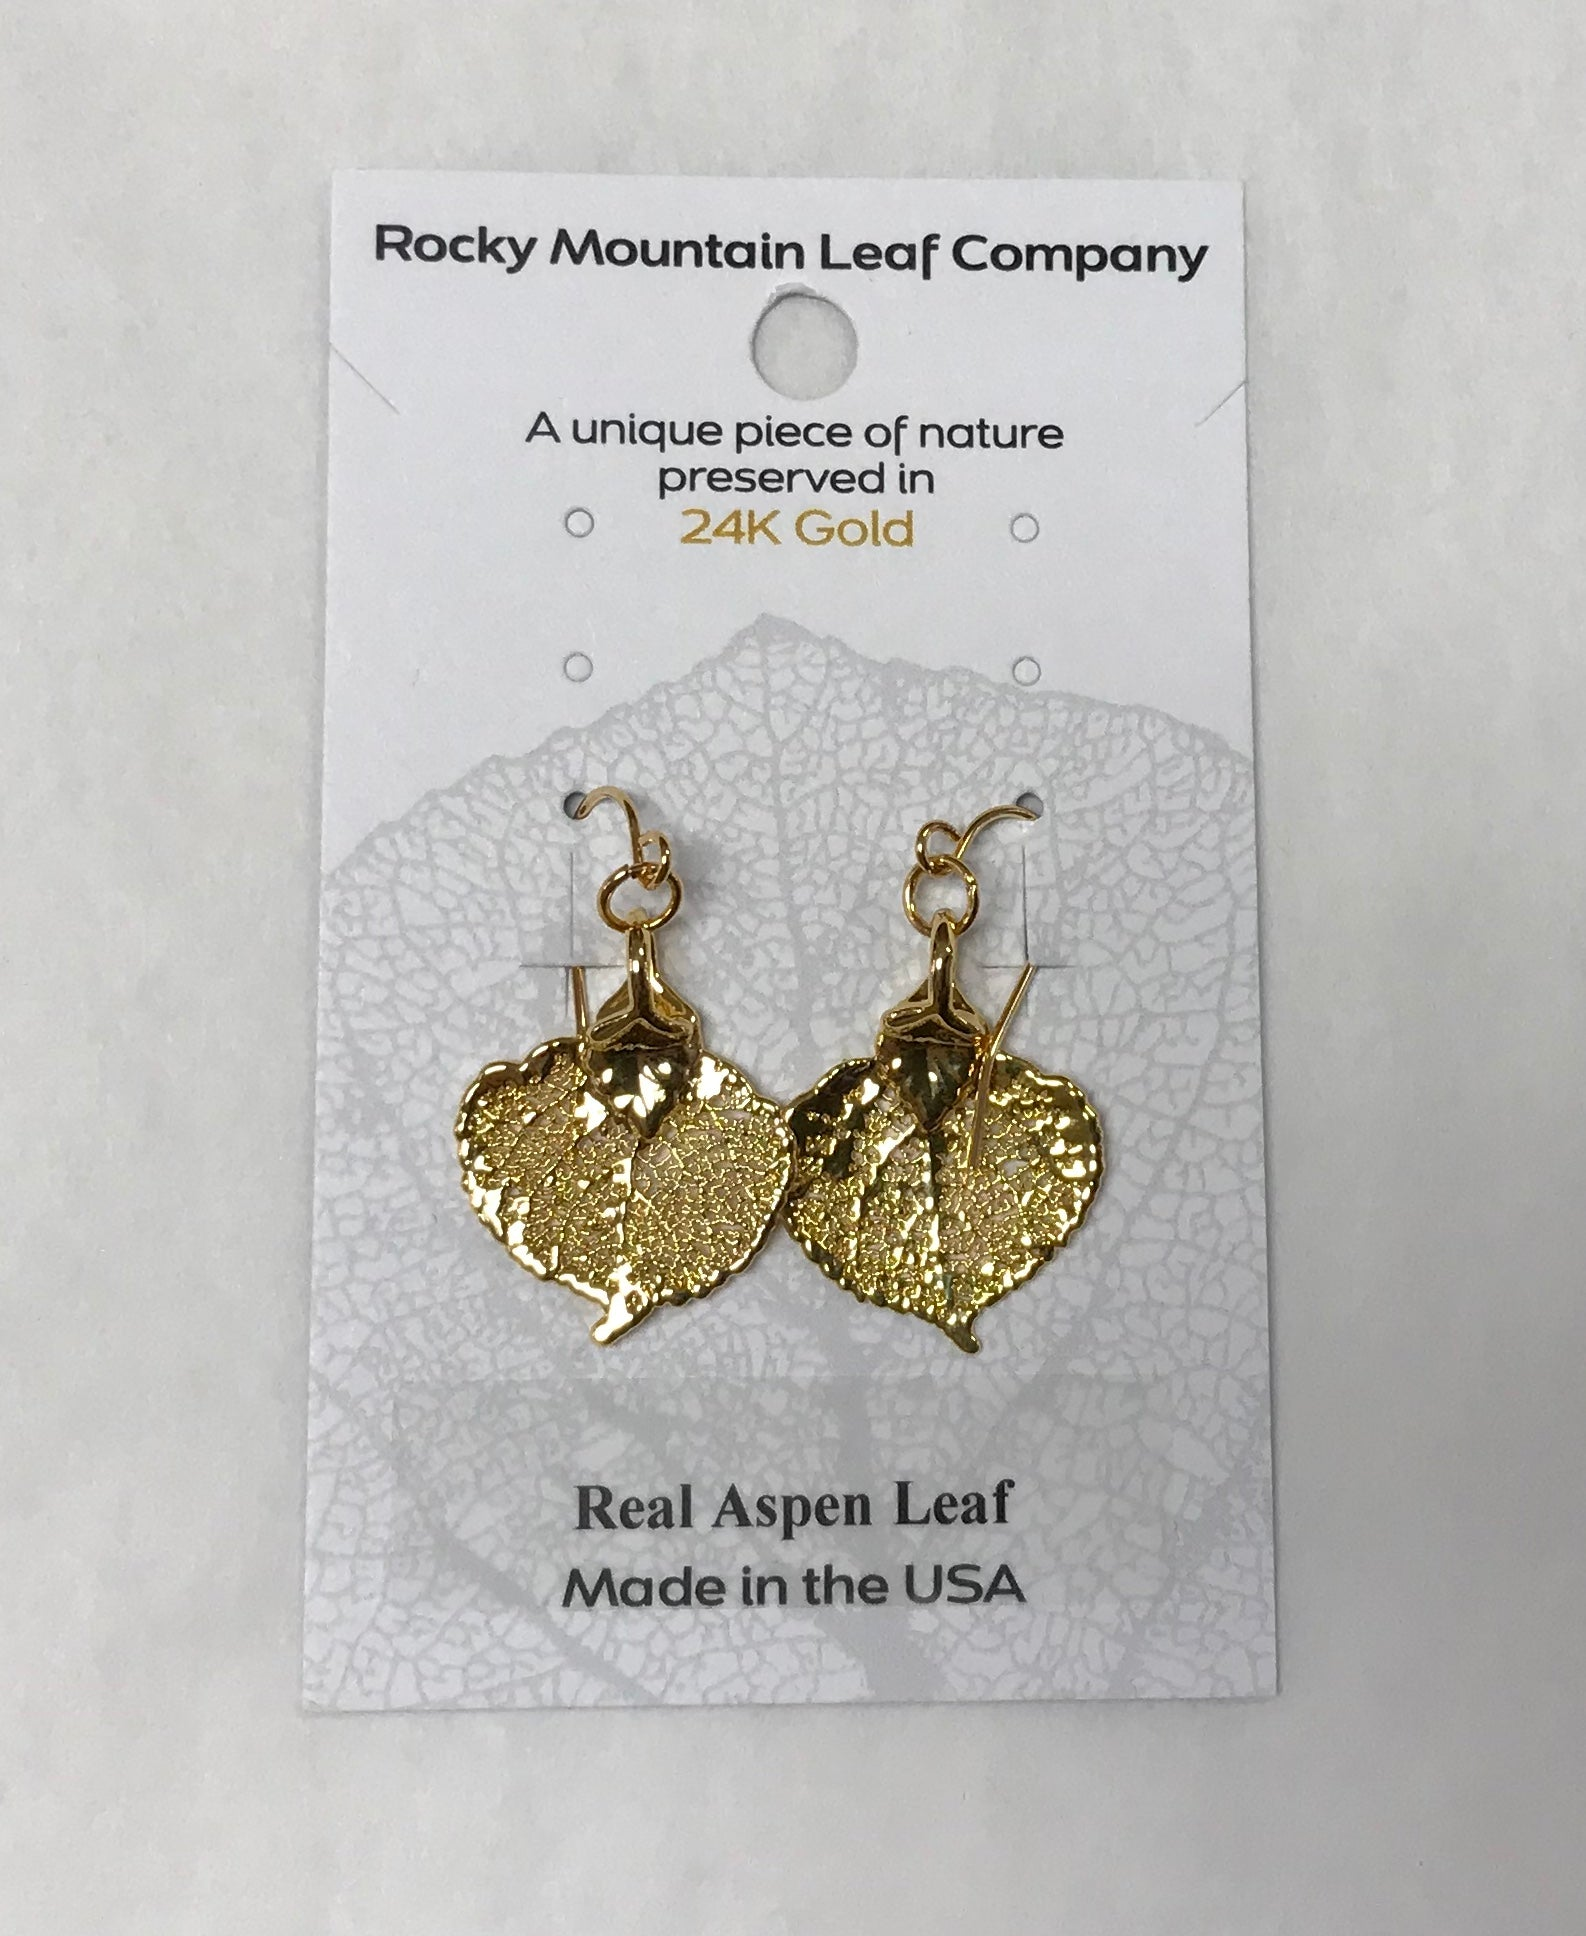 Gold Aspen Leaf Earrings